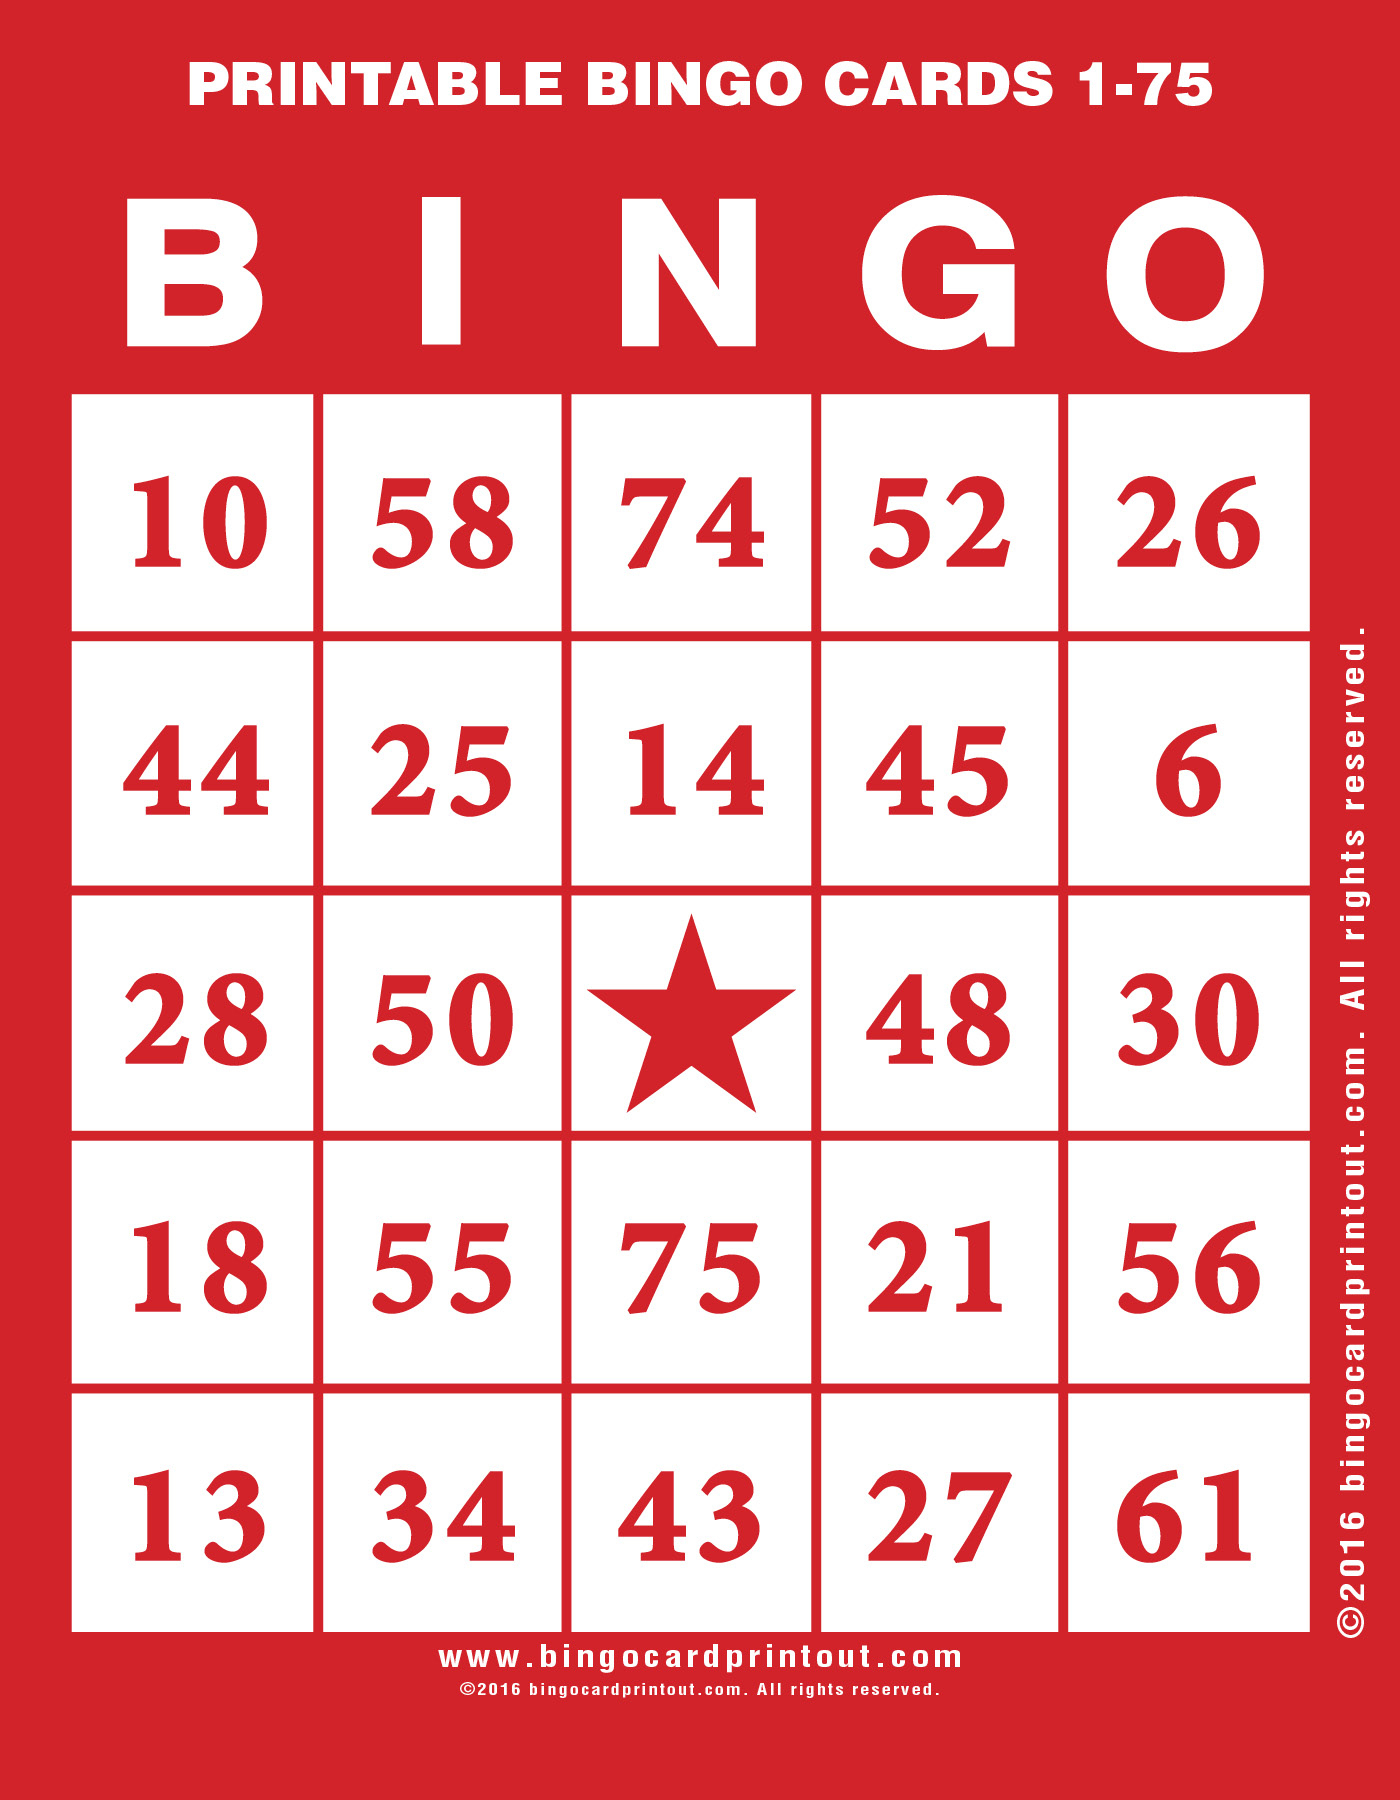 Printable Bingo Cards 1-75 - Bingocardprintout